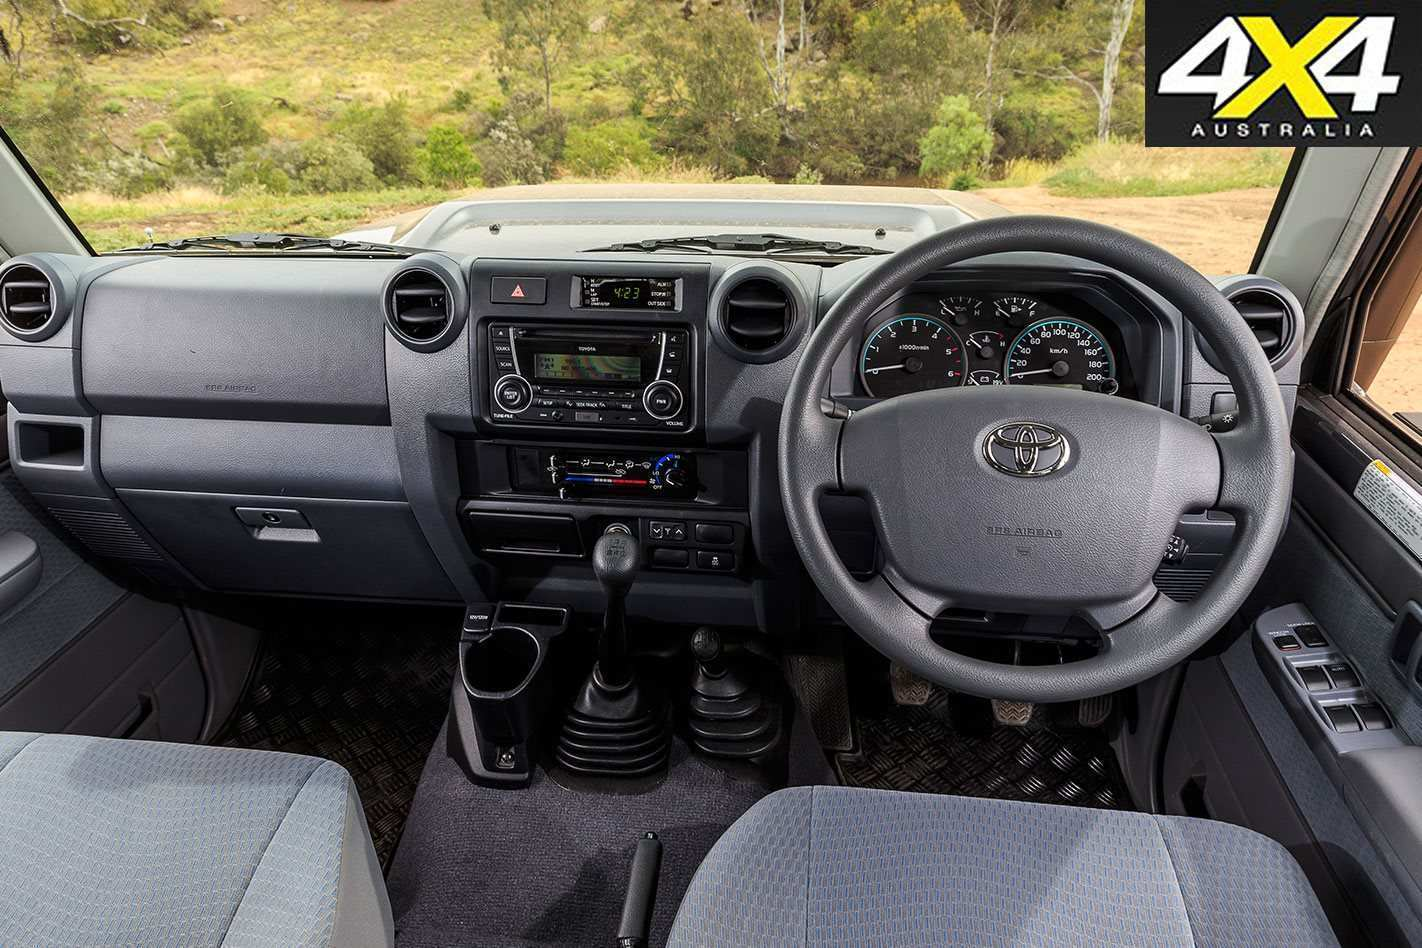 77 The 2019 Toyota Land Cruiser Ute Photos for 2019 Toyota Land Cruiser Ute